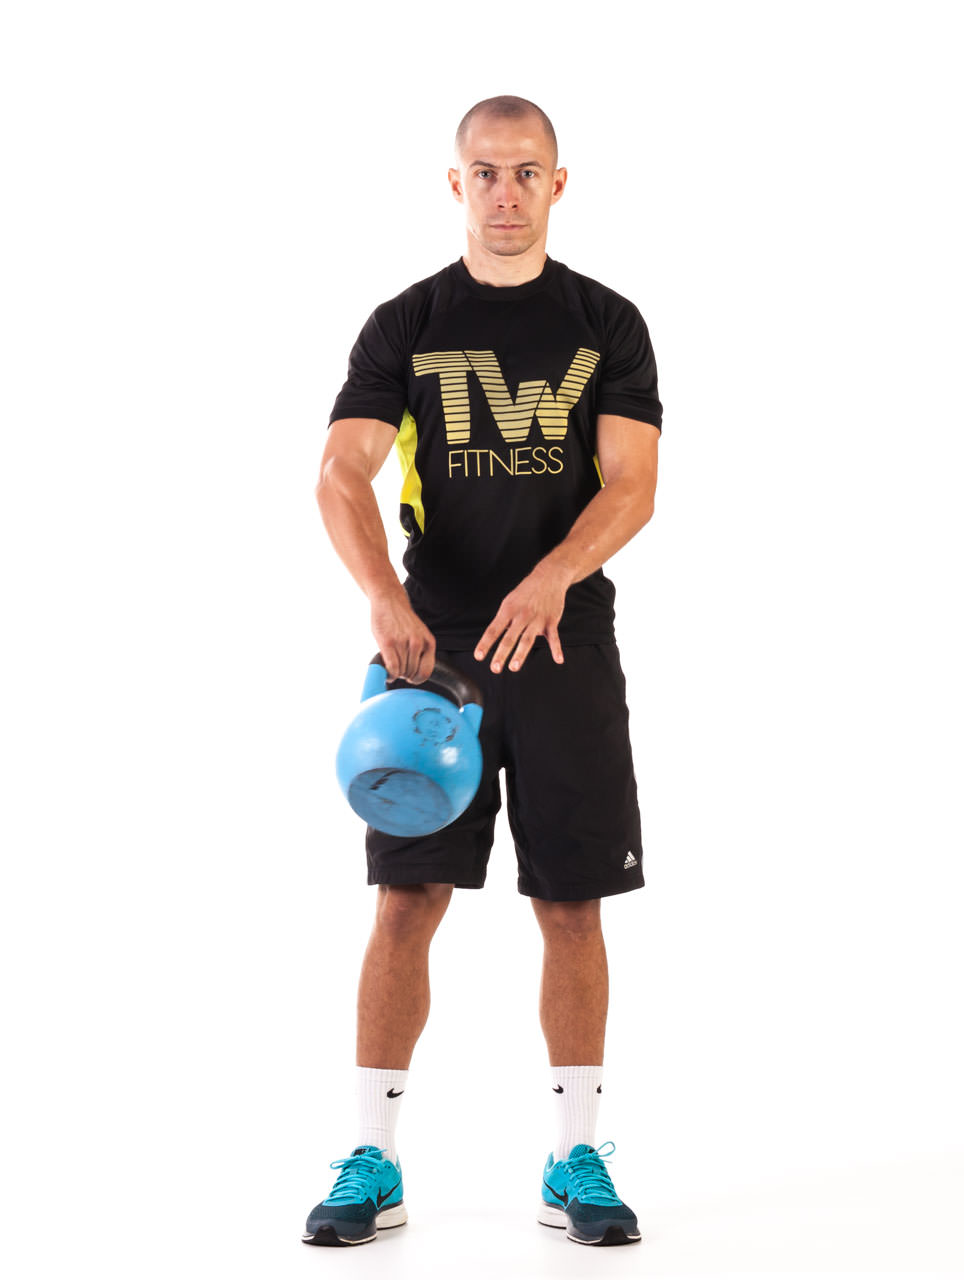 Kettlebell Around the Body frame #1